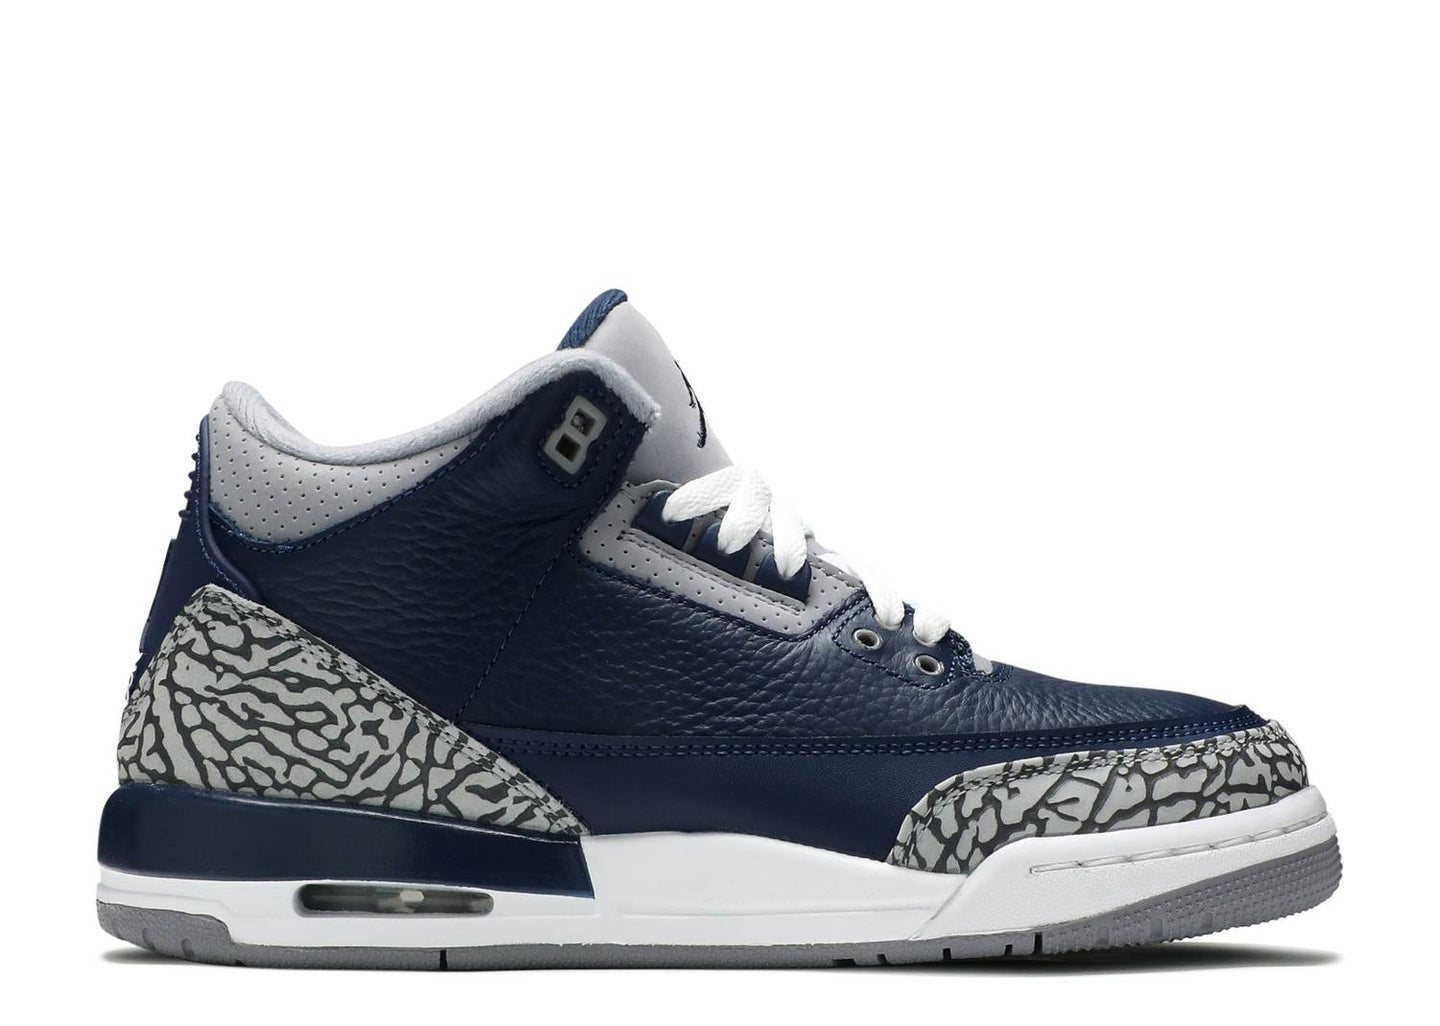 Air Jordan 3 Retro Georgetown (GS)